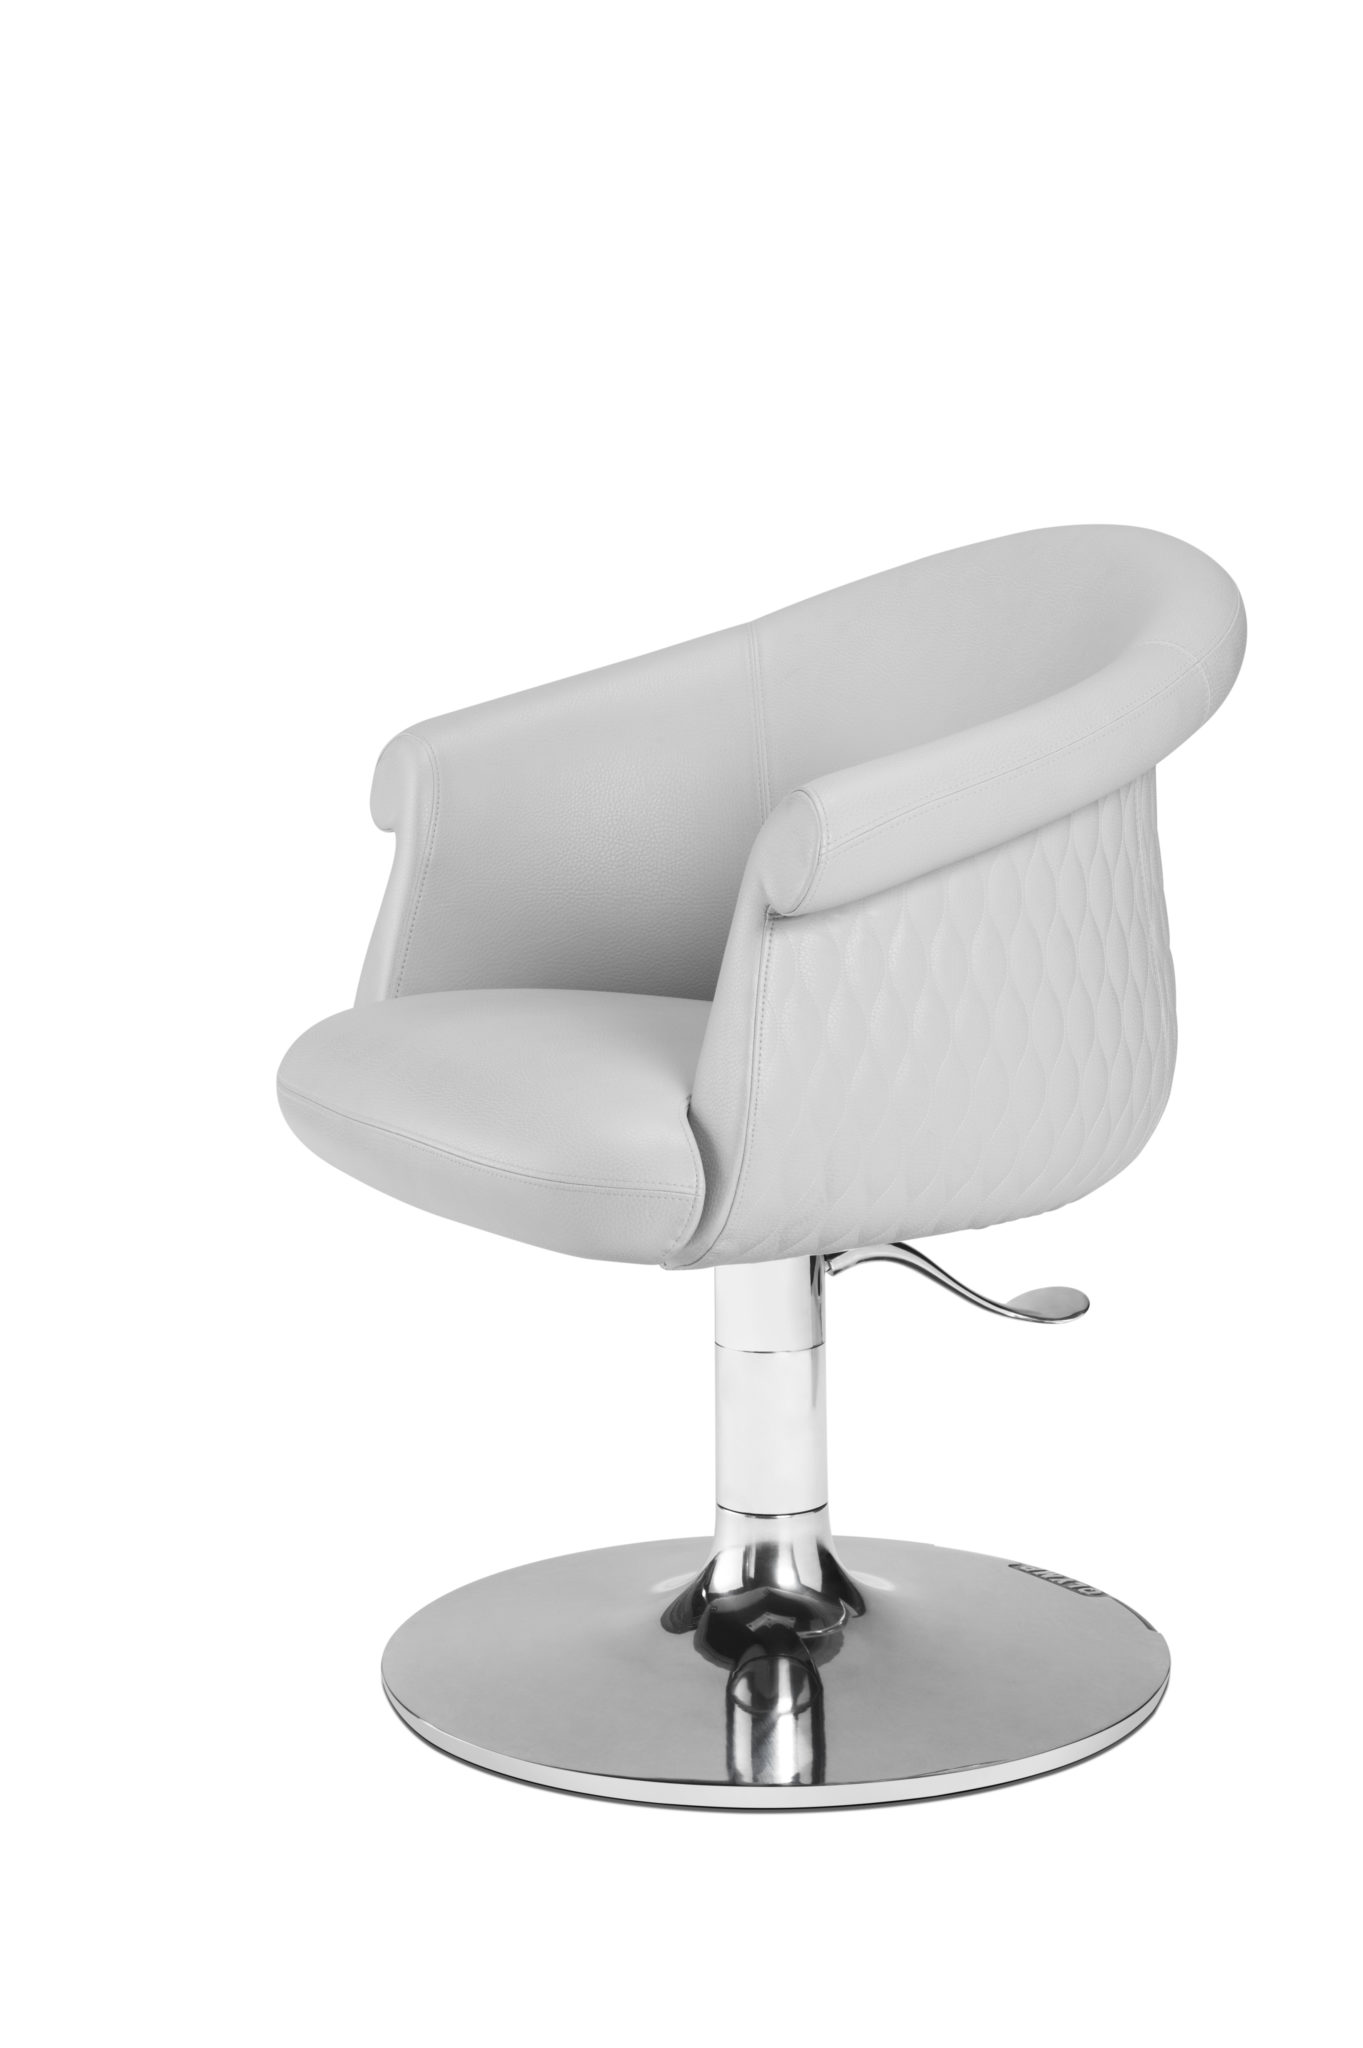 new high cheaper offer discounts OLYMP Mimi by Maletti - OLYMP - BEST SALON INSPIRATION